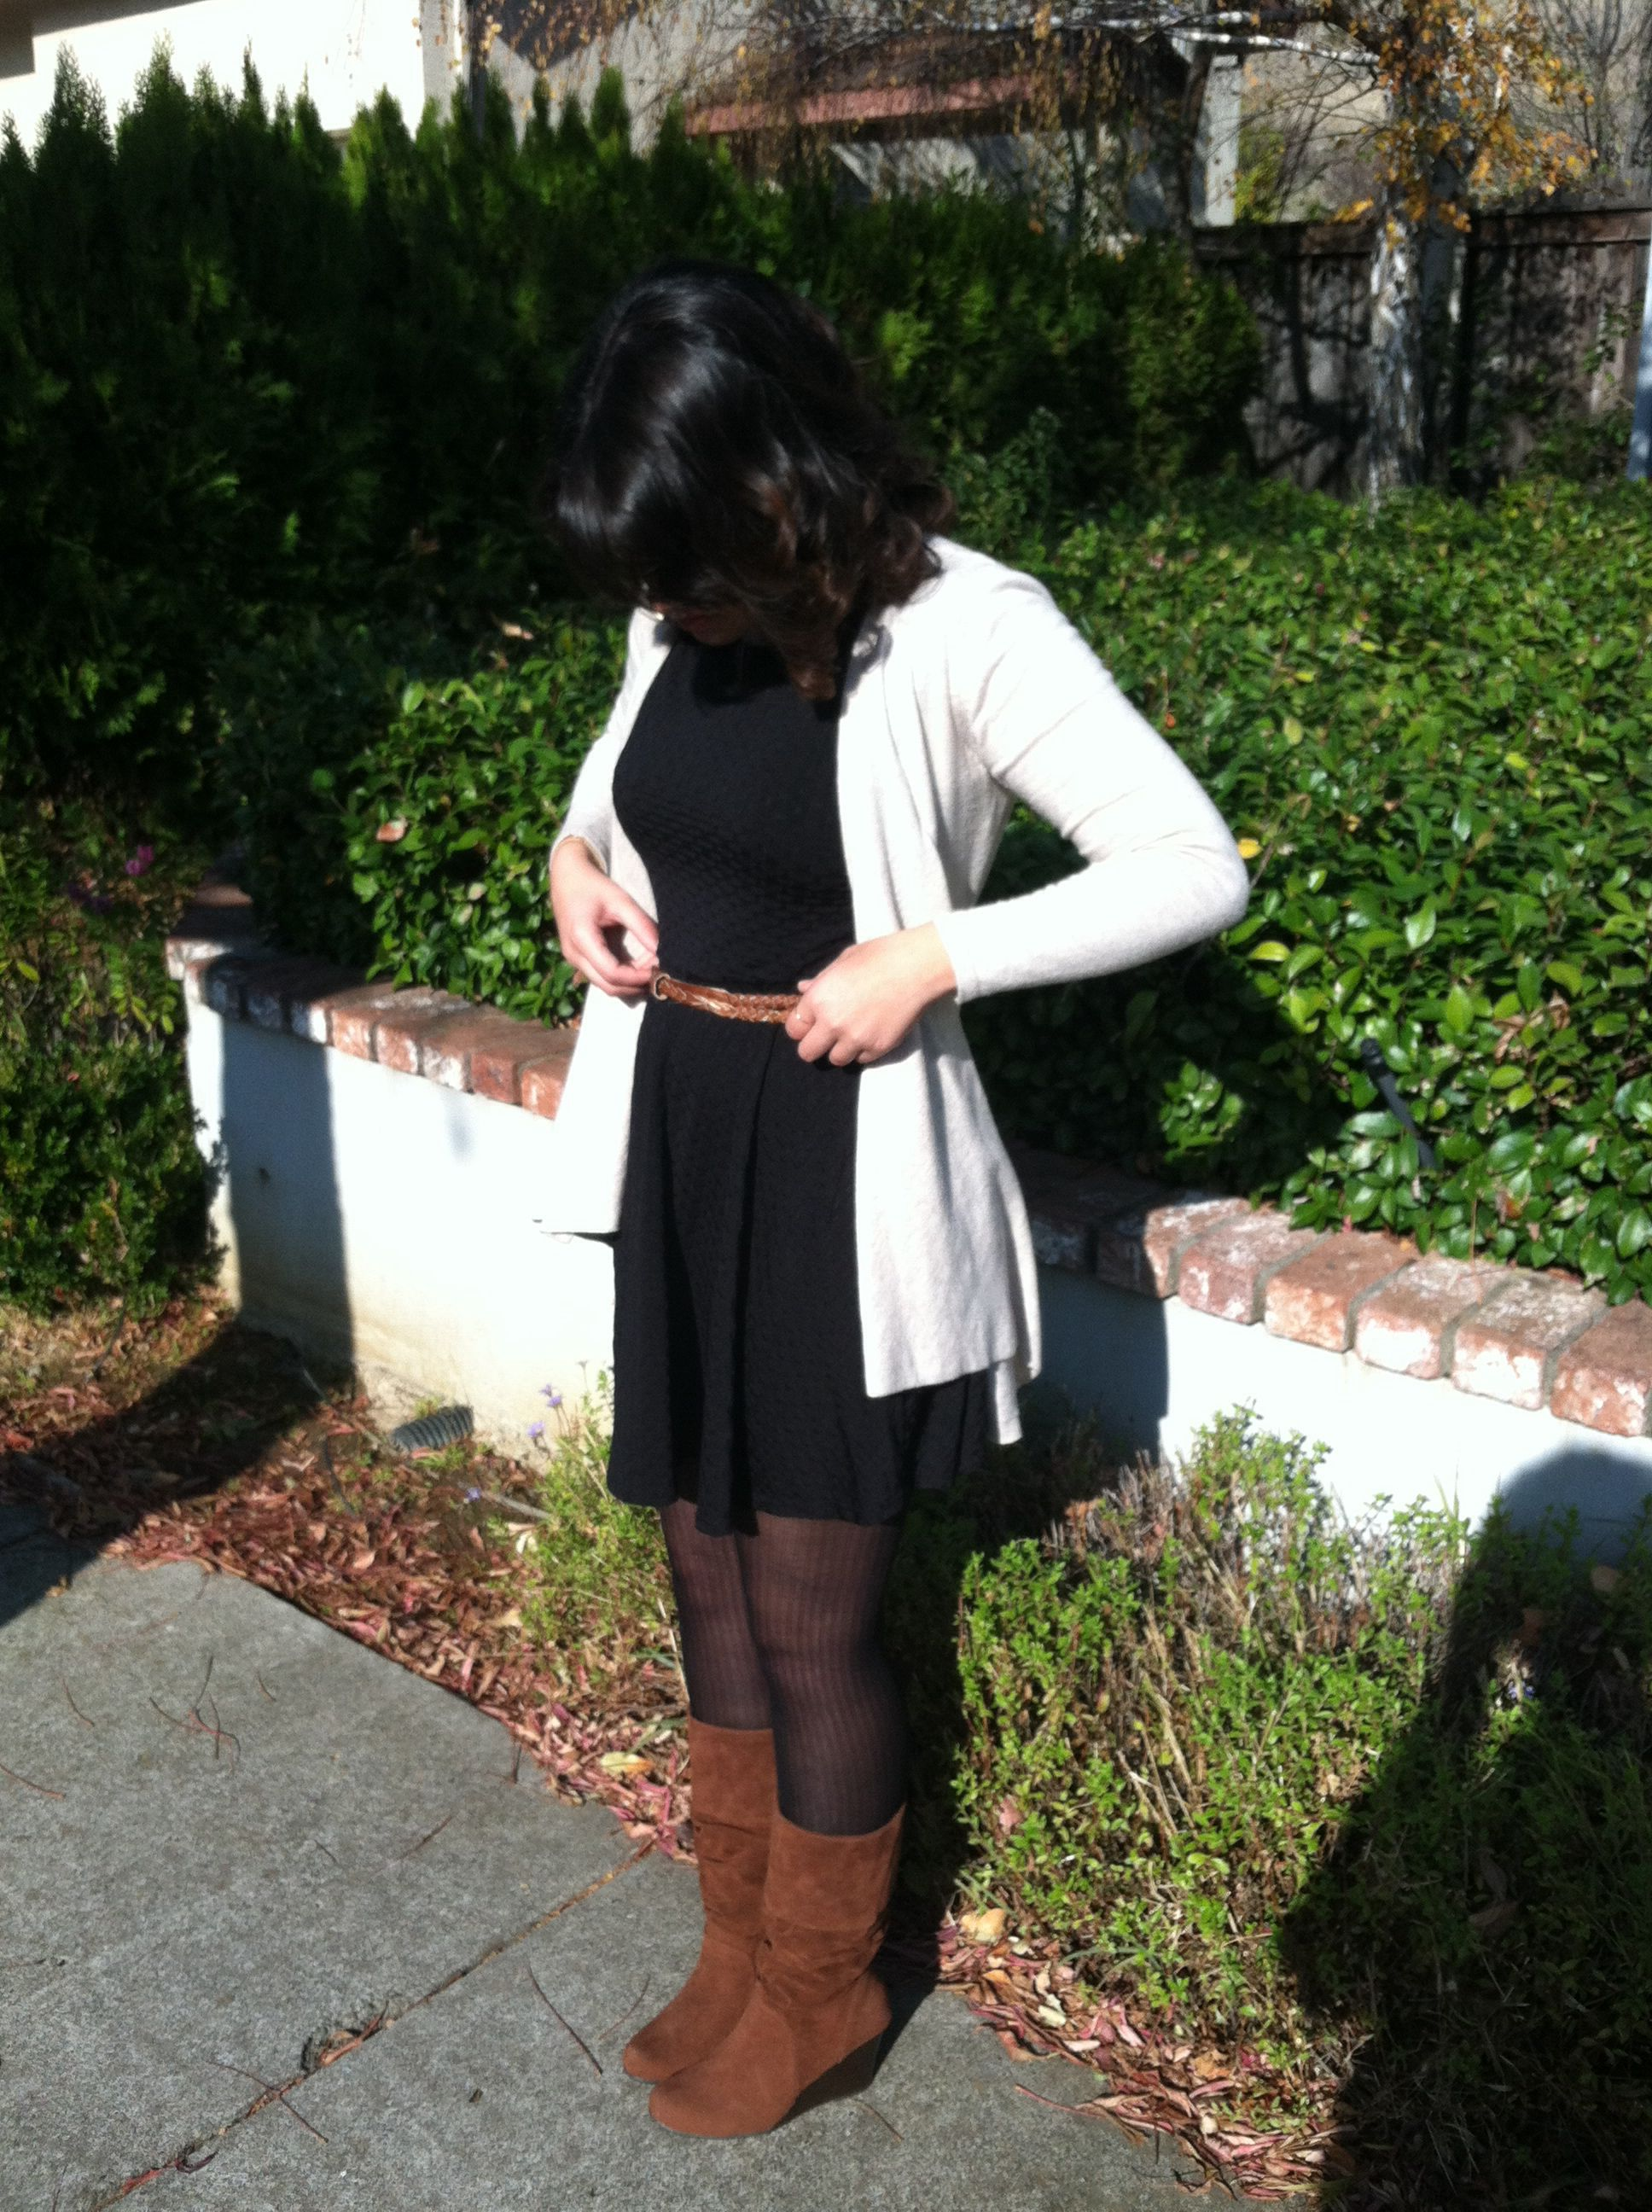 Thanksgiving Outfit Little Black Dress Brown Belt Creme Cardigan Brown Boots Curly Hai Office Outfits Women Casual Womens Casual Outfits Fall Dress Outfit [ 2592 x 1936 Pixel ]